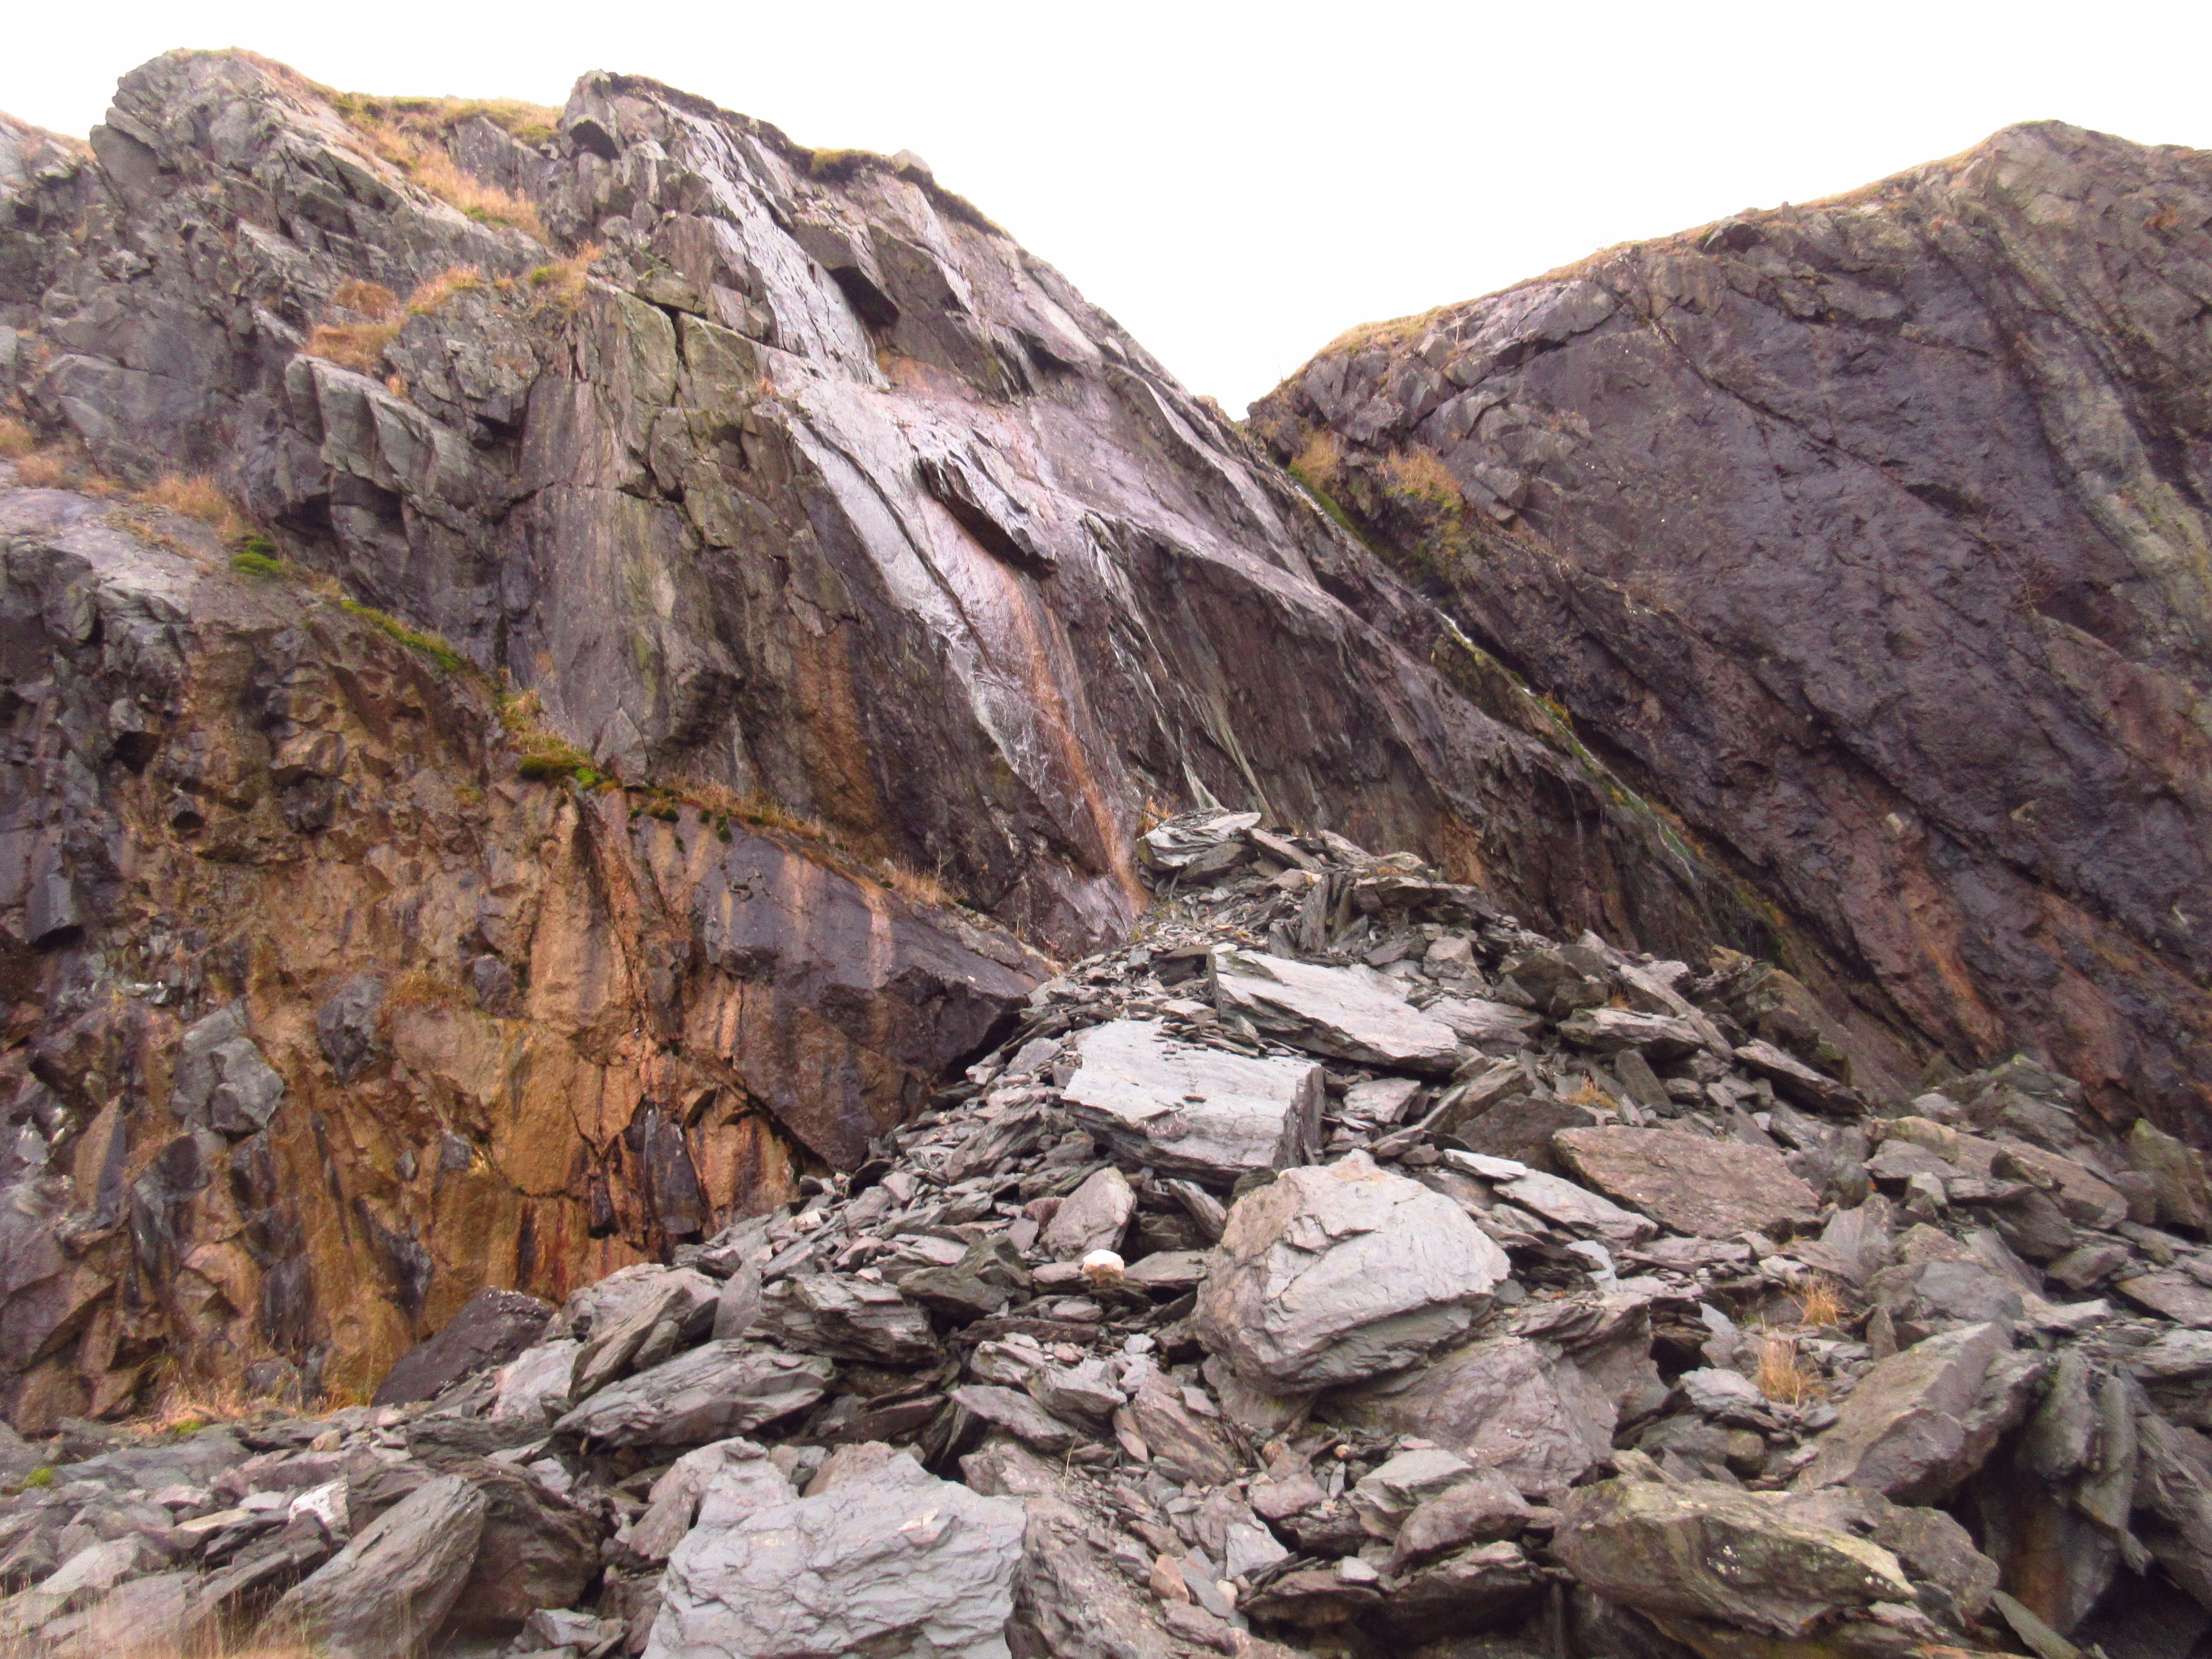 The ancient basement exposed at the old Ingleton 'Granite' Quarry with greywackes and slates dating back 480 million years. Stephen Oldfield